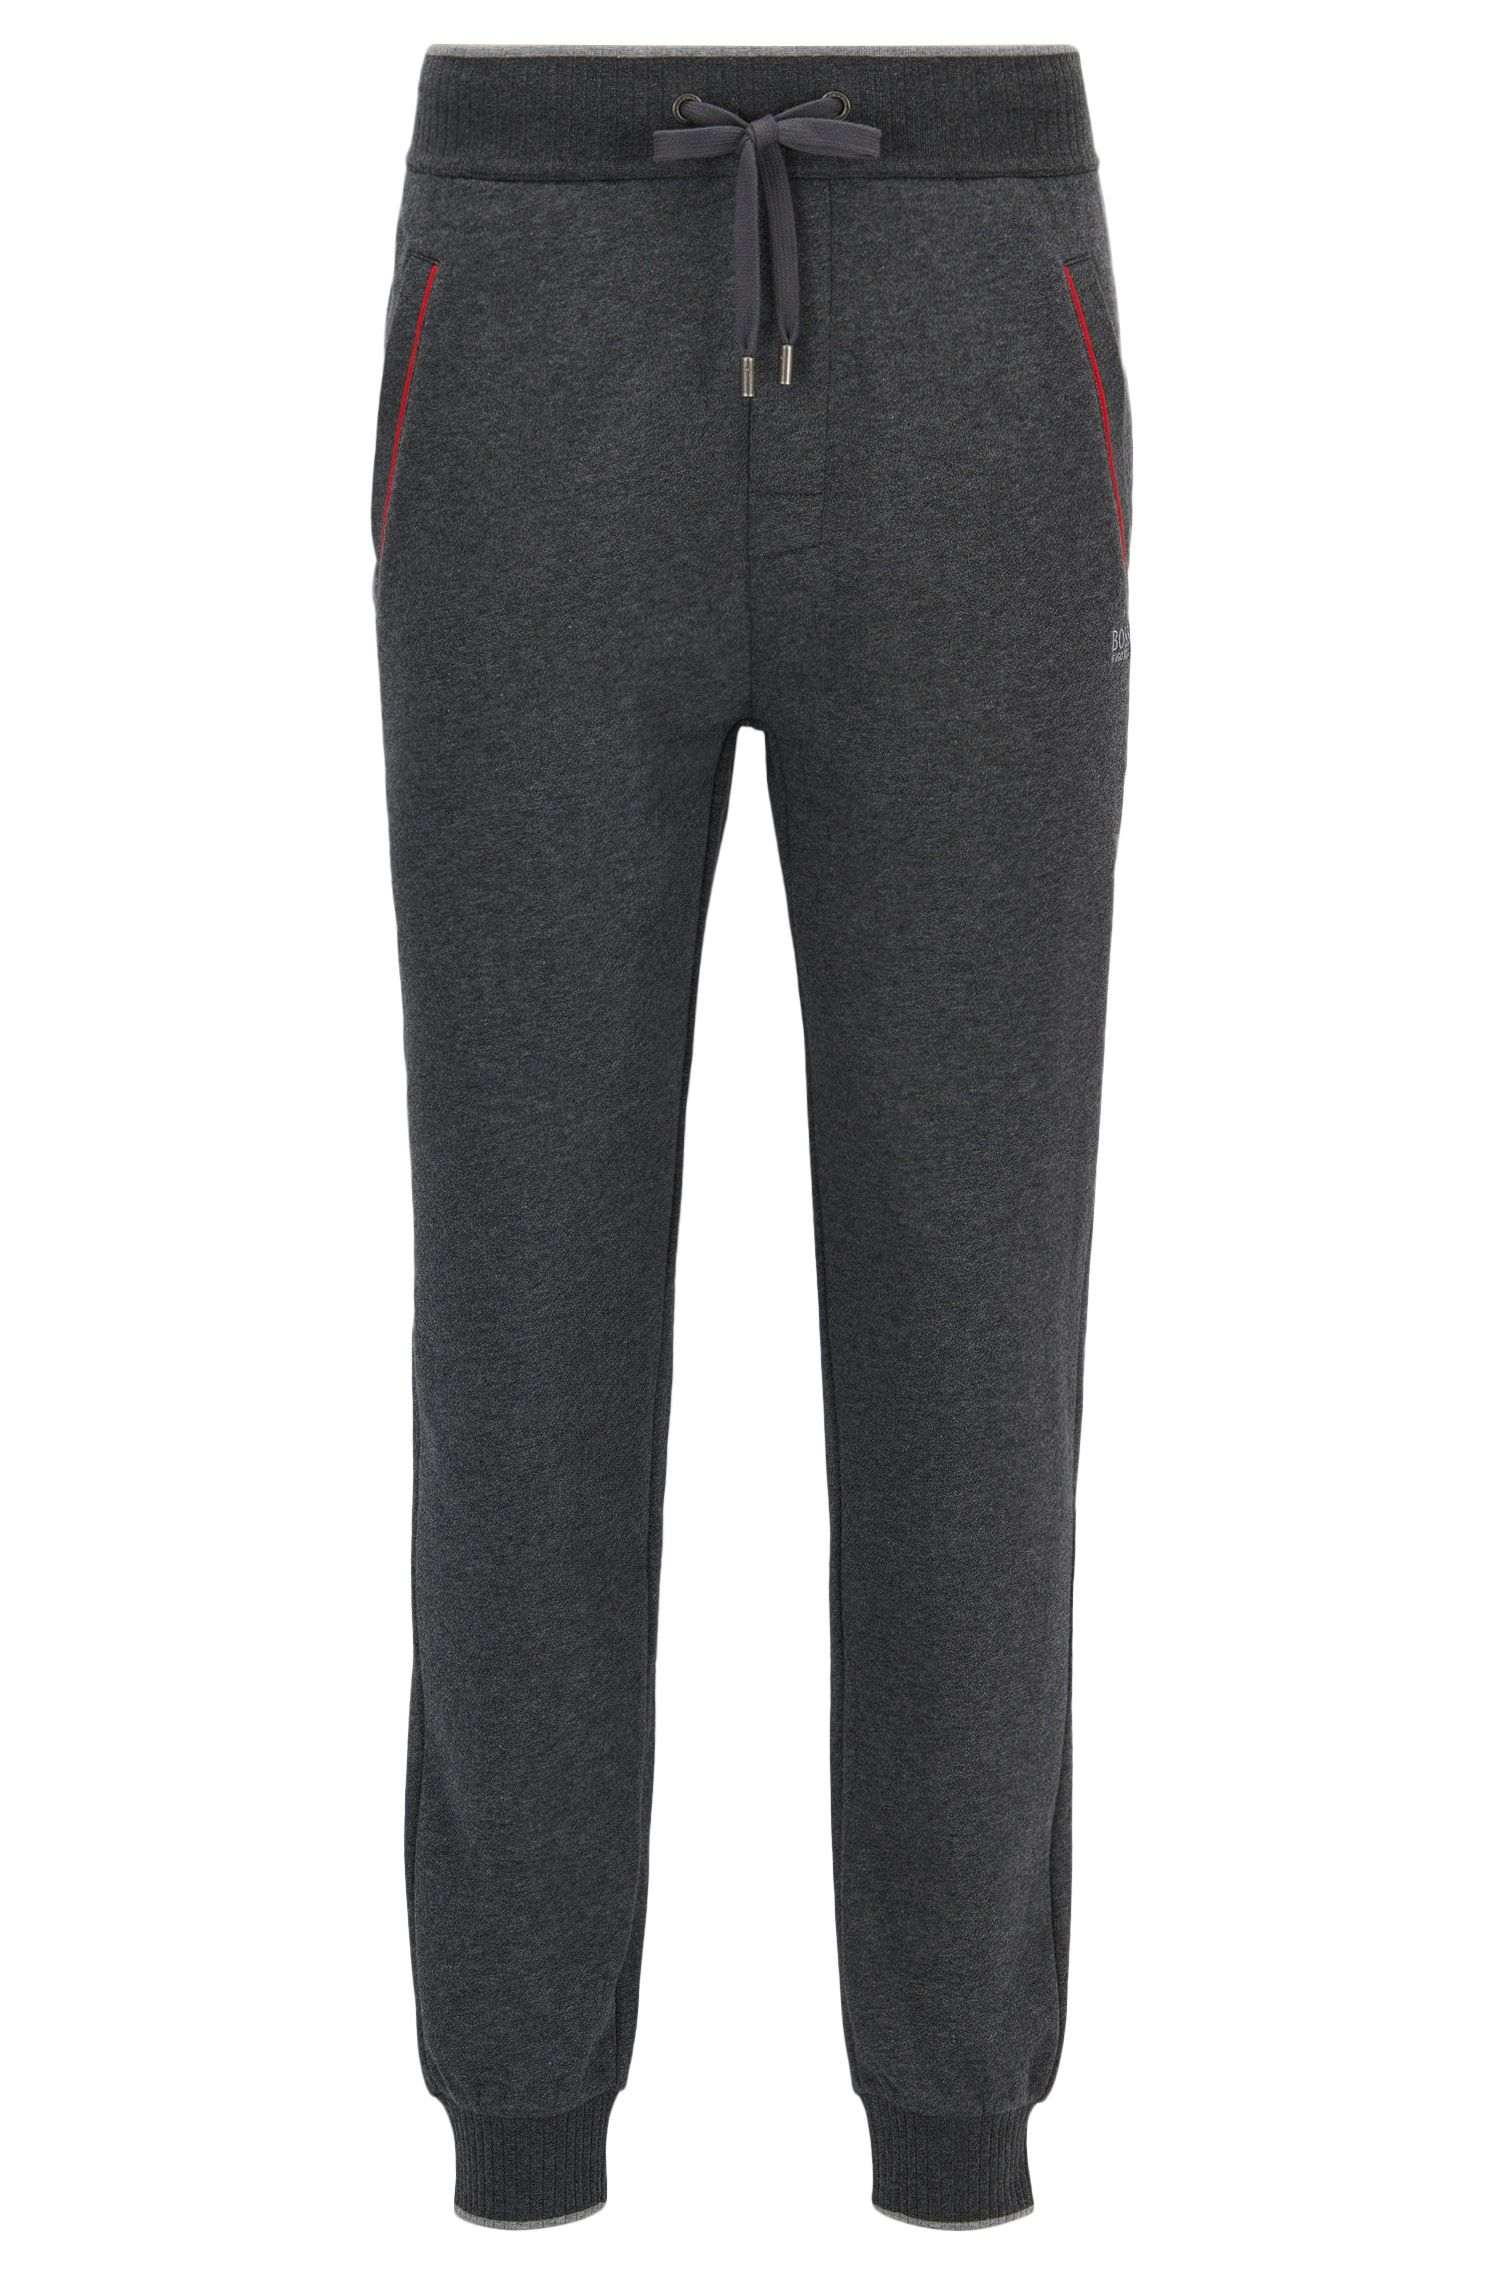 Cuffed jogging bottoms in cotton-blend terry